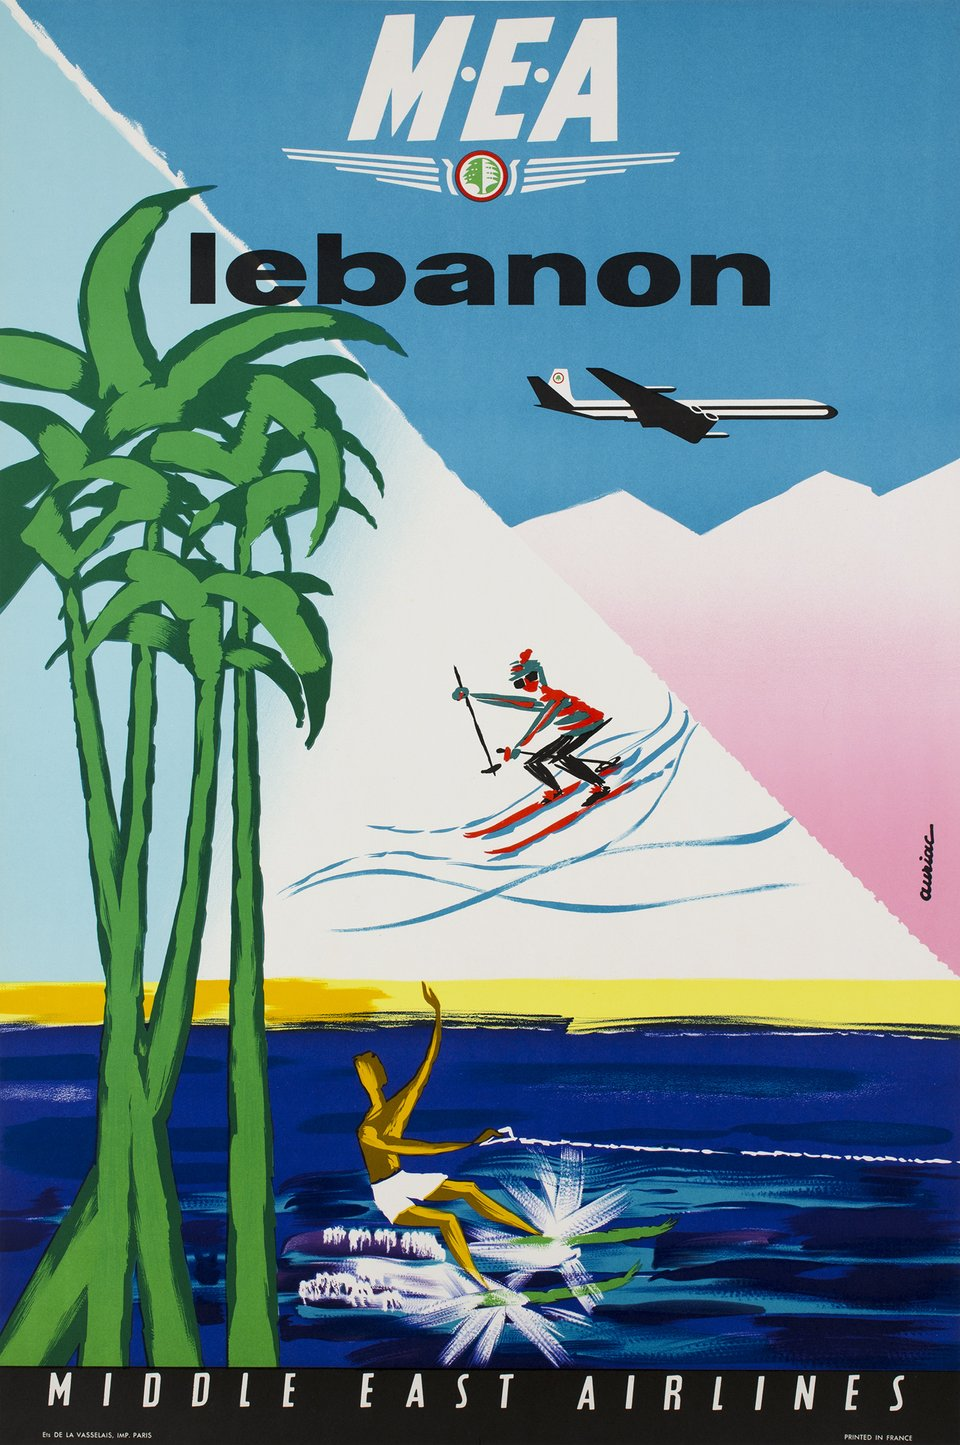 MEA, Middle East Airlines, Lebanon – Vintage poster – Jacques AURIAC – 1961